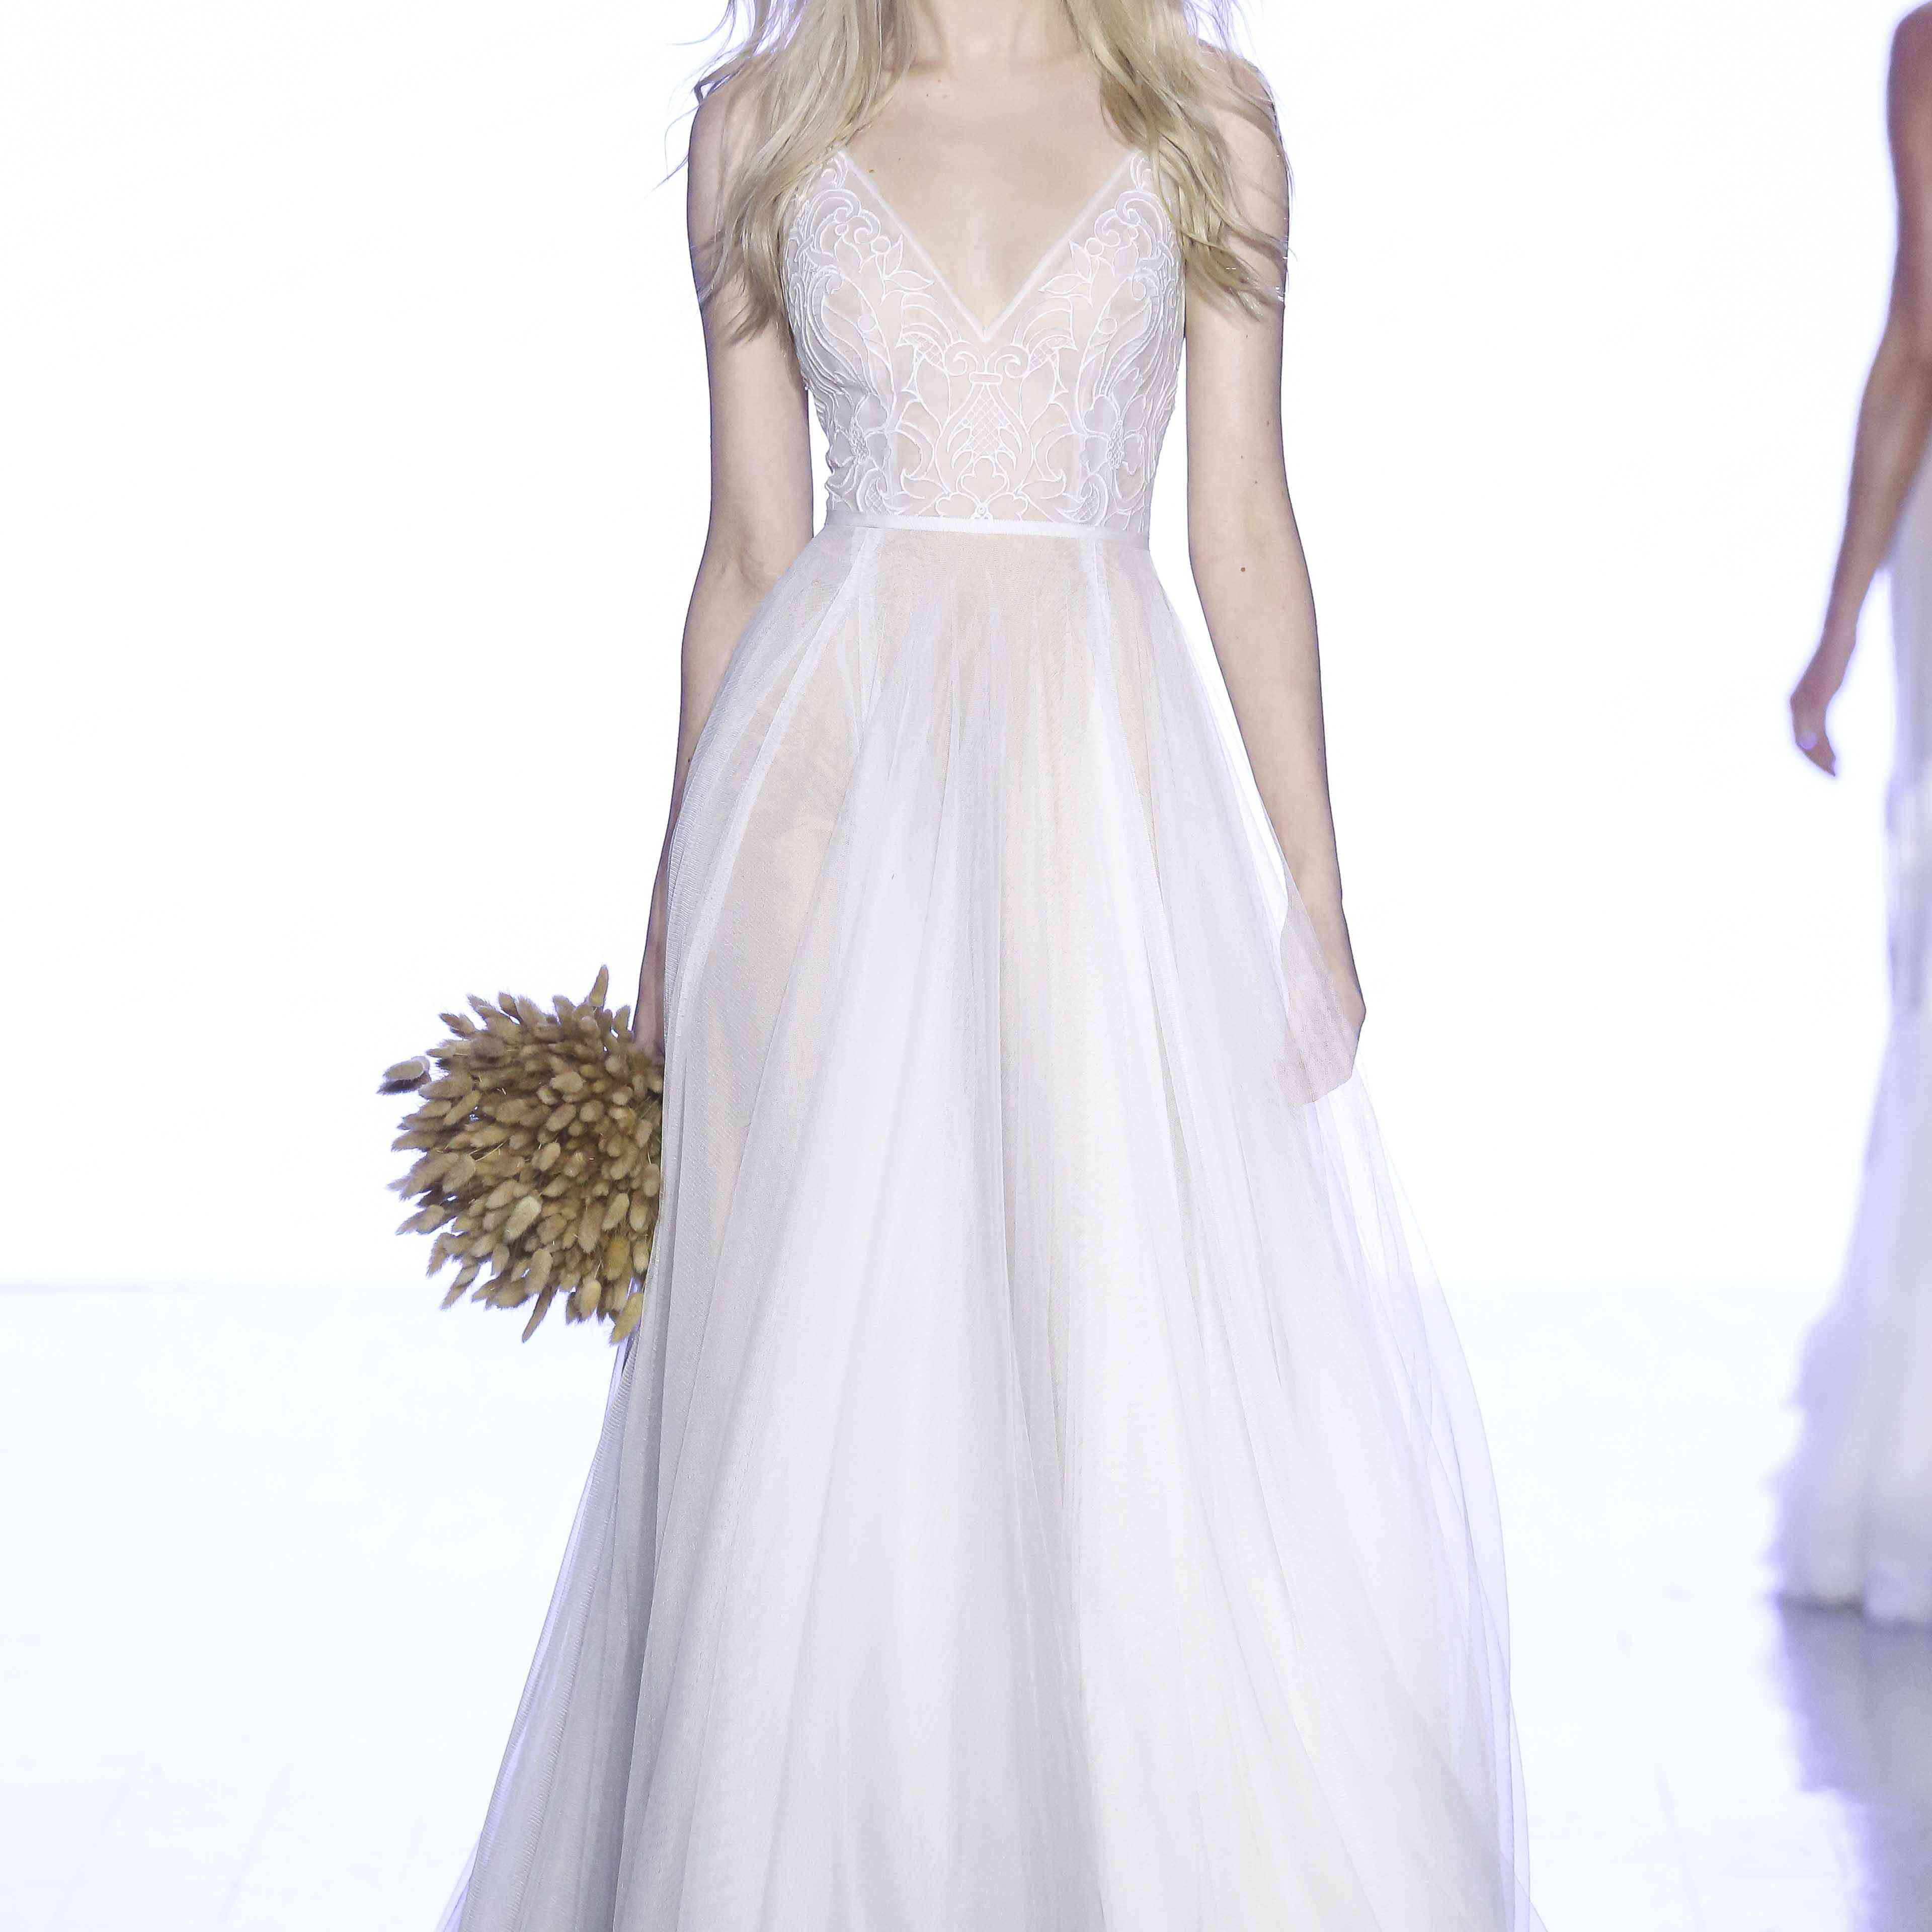 Model in V-neck A-line gown with lace bodice and organza skirt